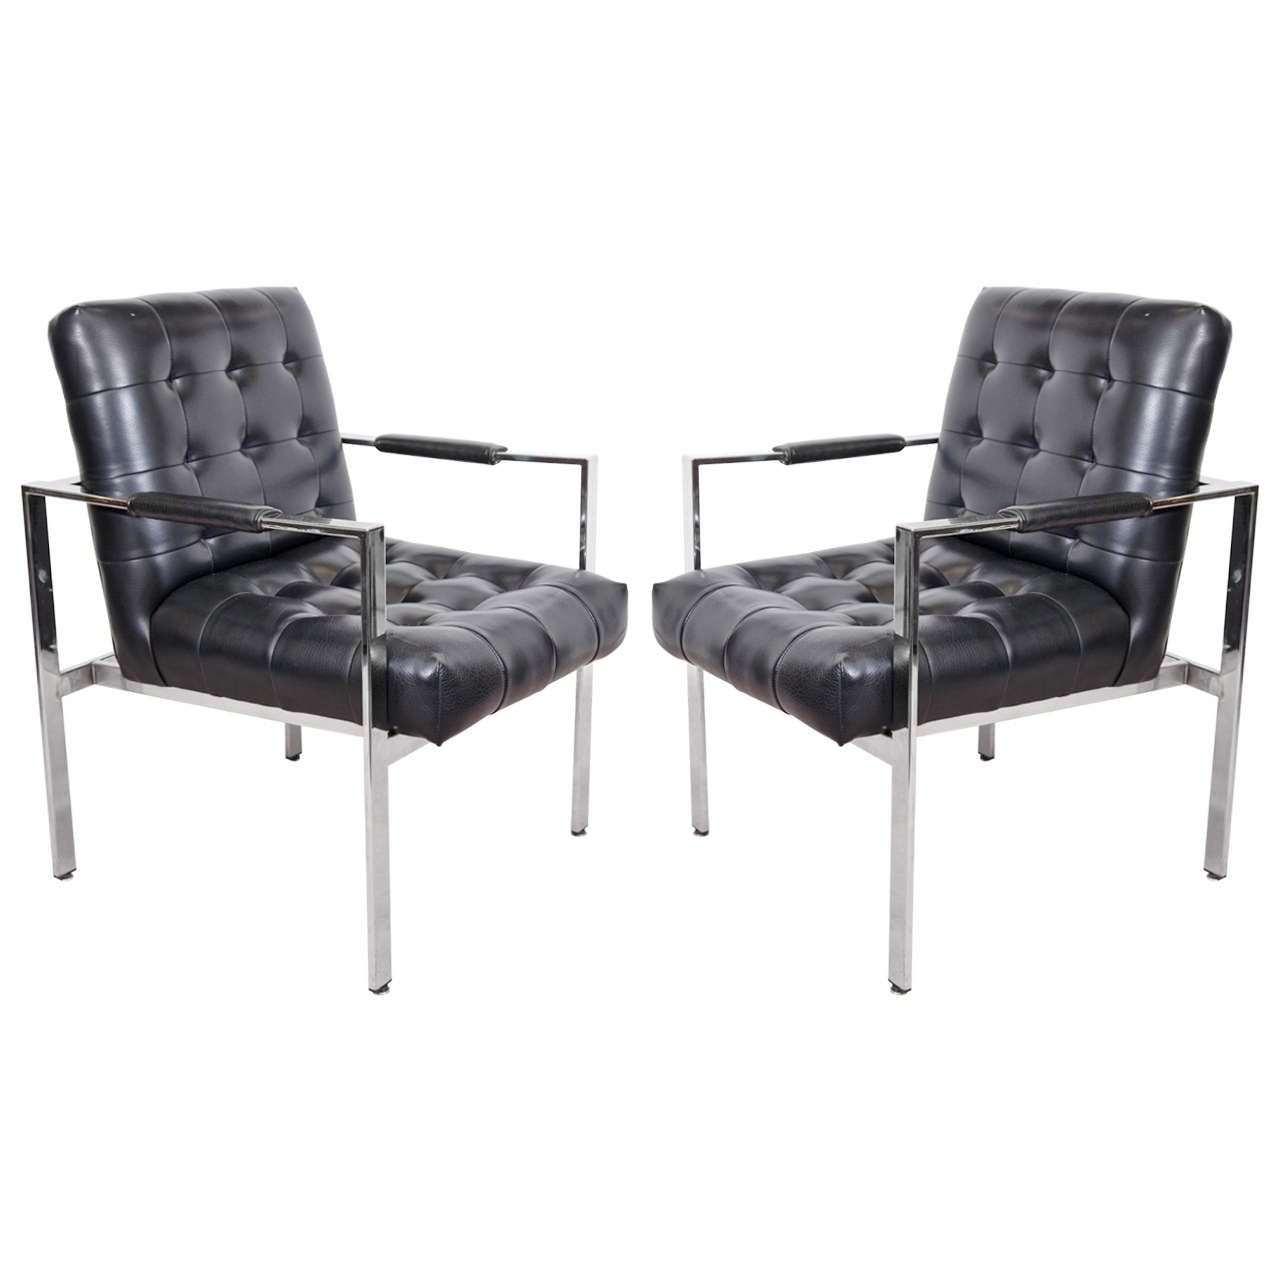 Pair Of Mid Century Tufted Black Vinyl Chairs By Milo